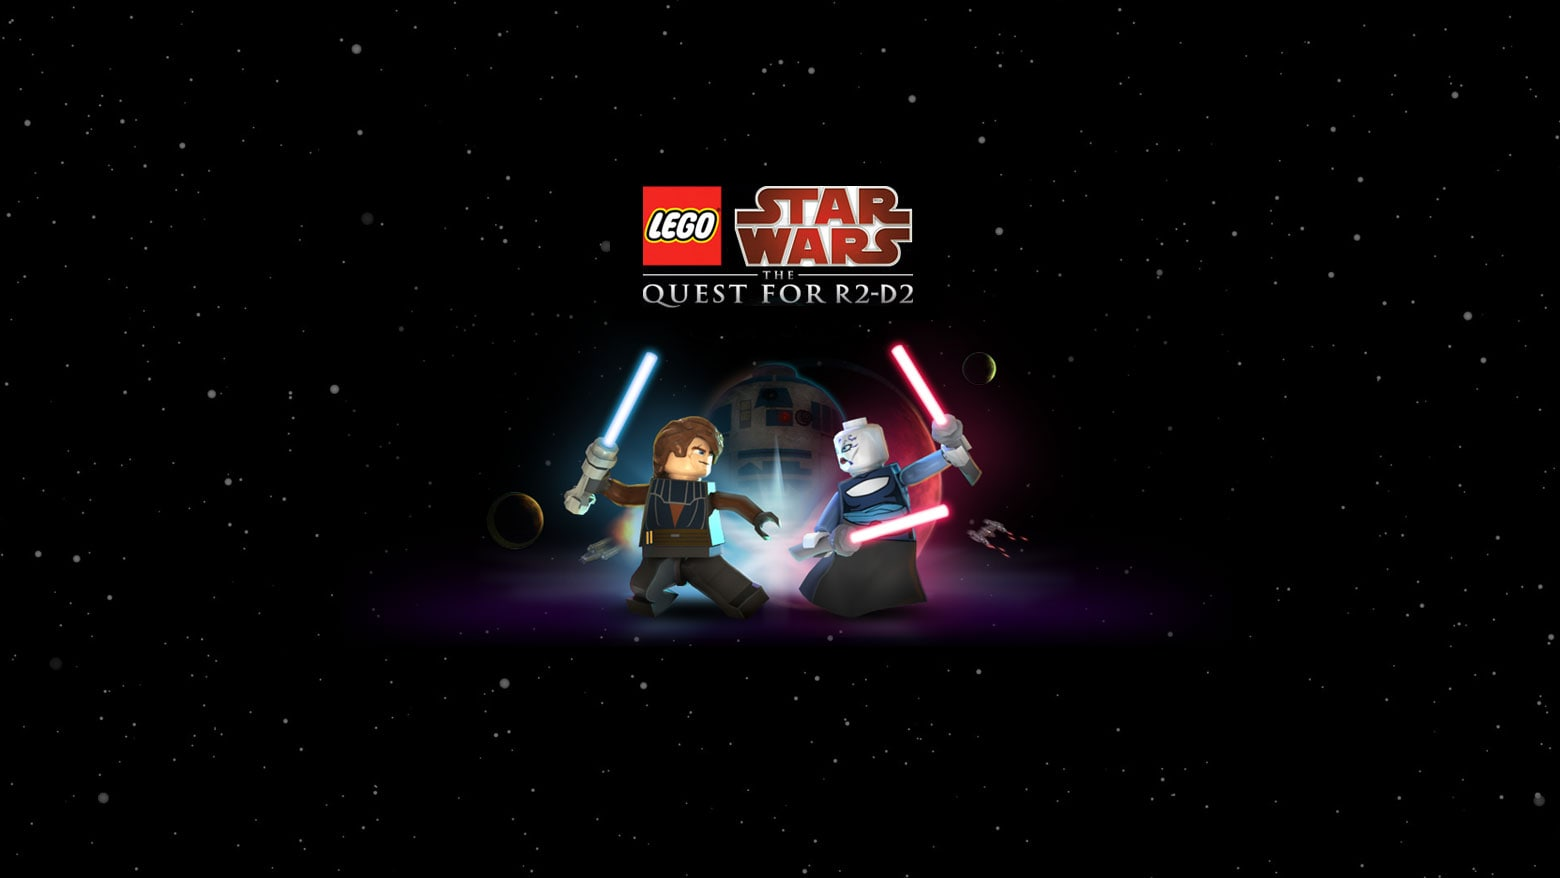 kinect star wars com lego star wars quest for r2 d2